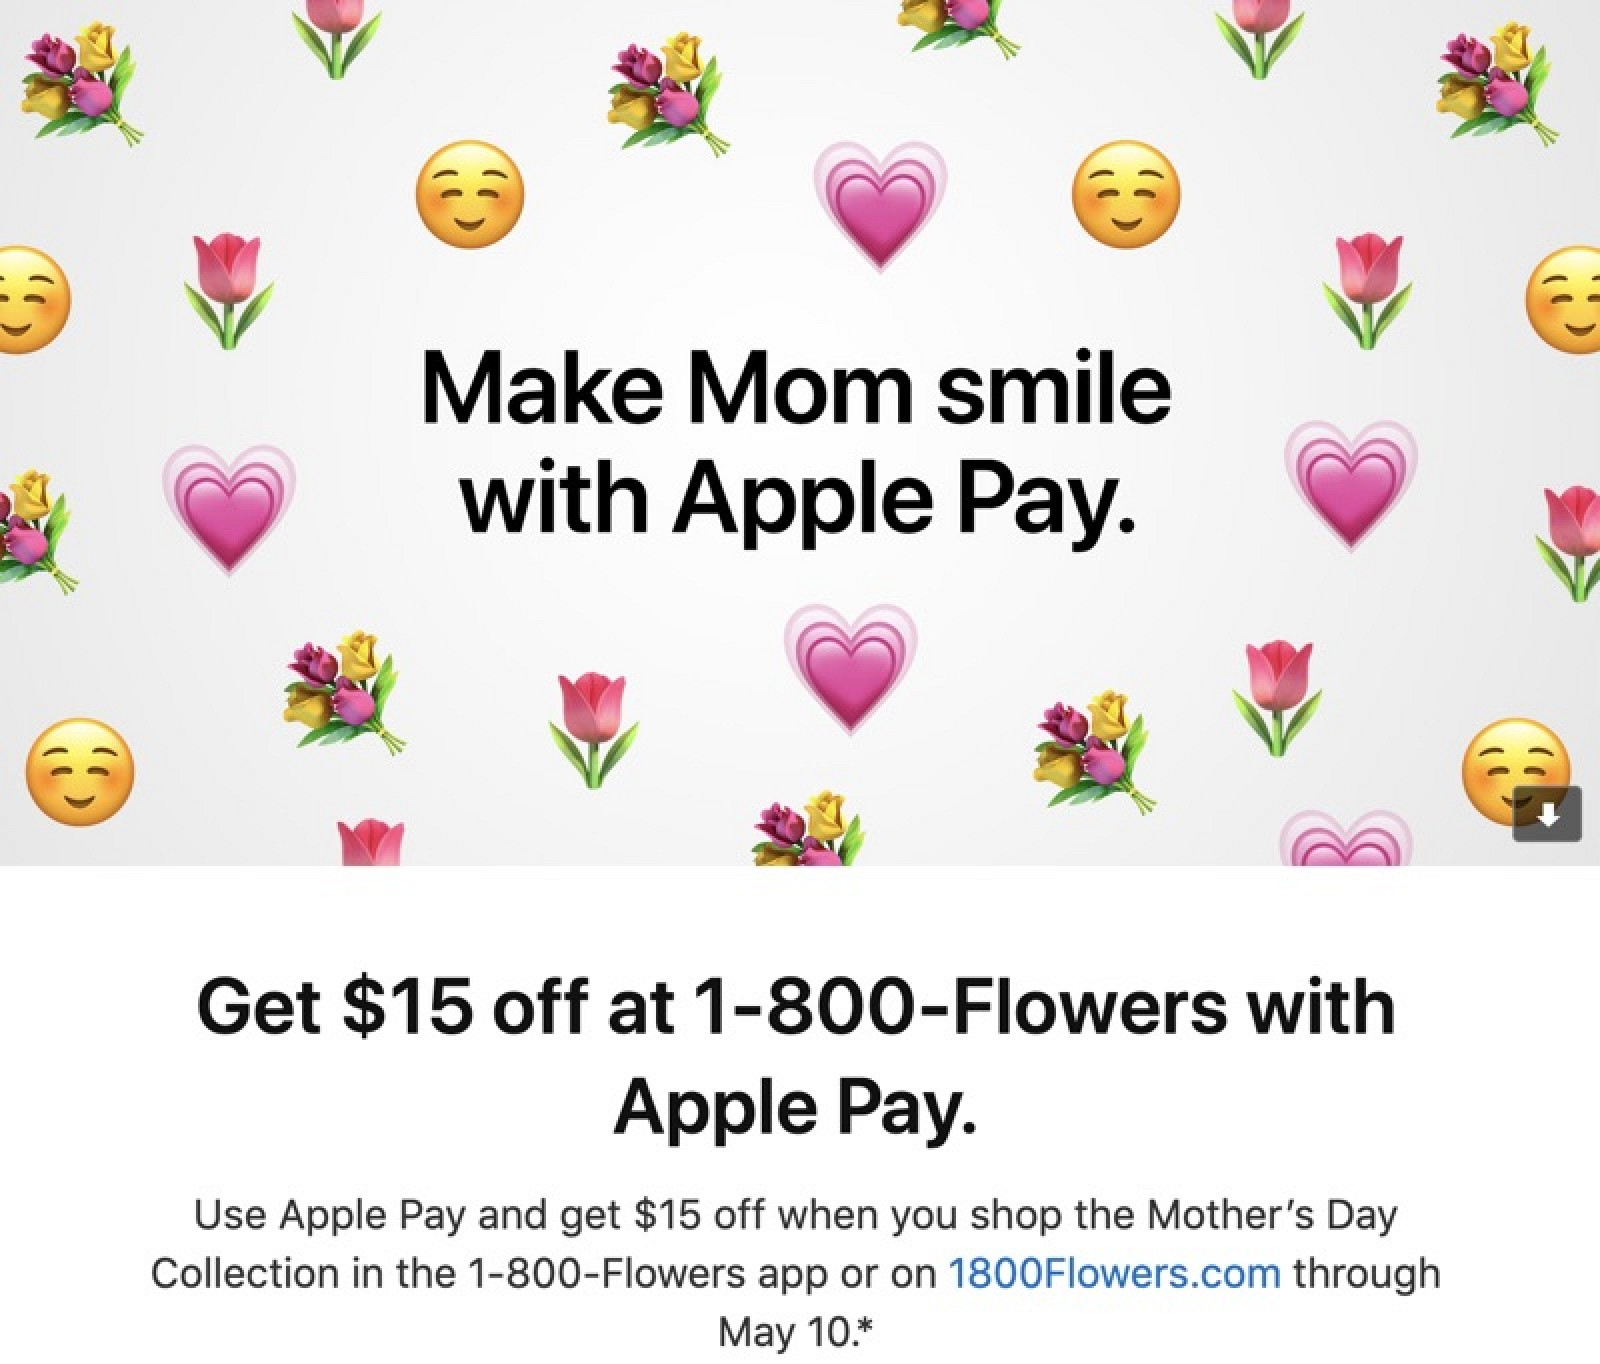 apple pay promo offers 15 off 1 800 flowers in celebration of mother 39 s day macrumors. Black Bedroom Furniture Sets. Home Design Ideas